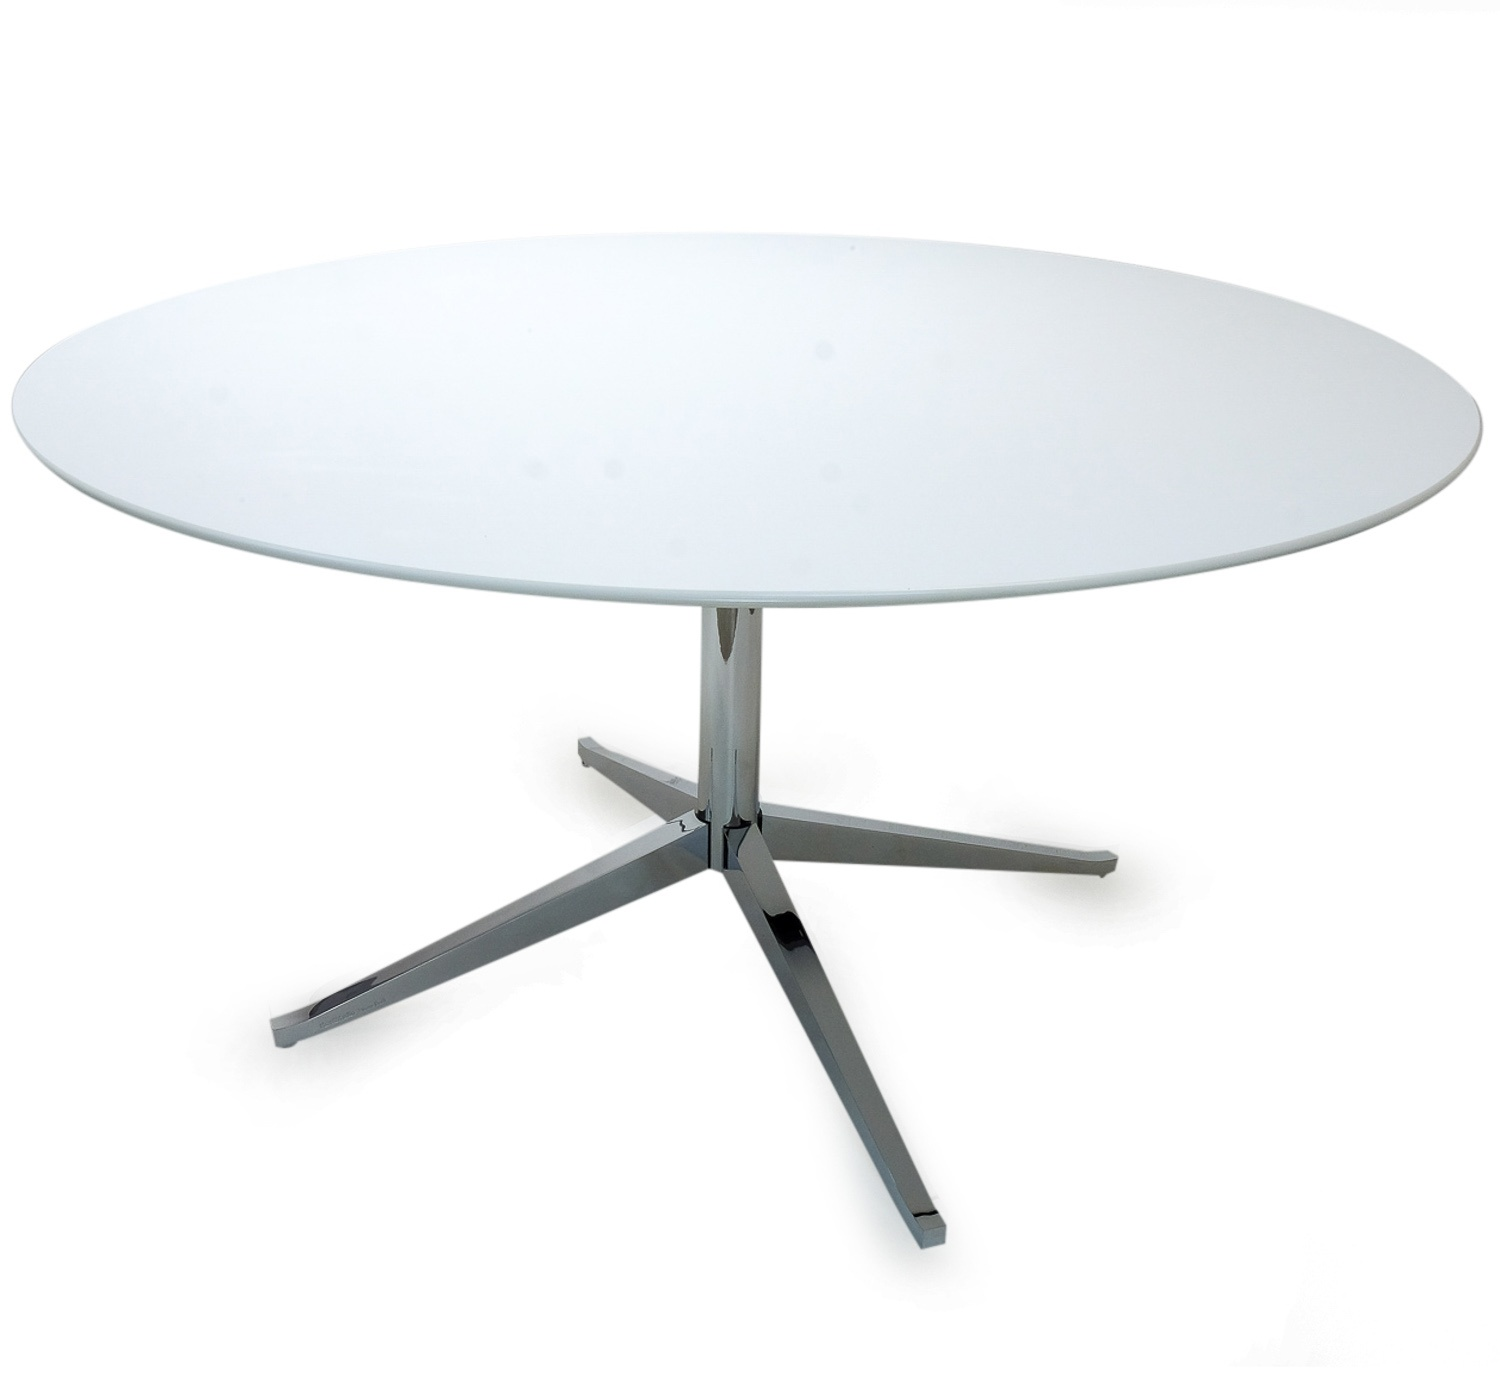 Knoll Table Florence Knoll Table Desk Round 137cm Sympledesign